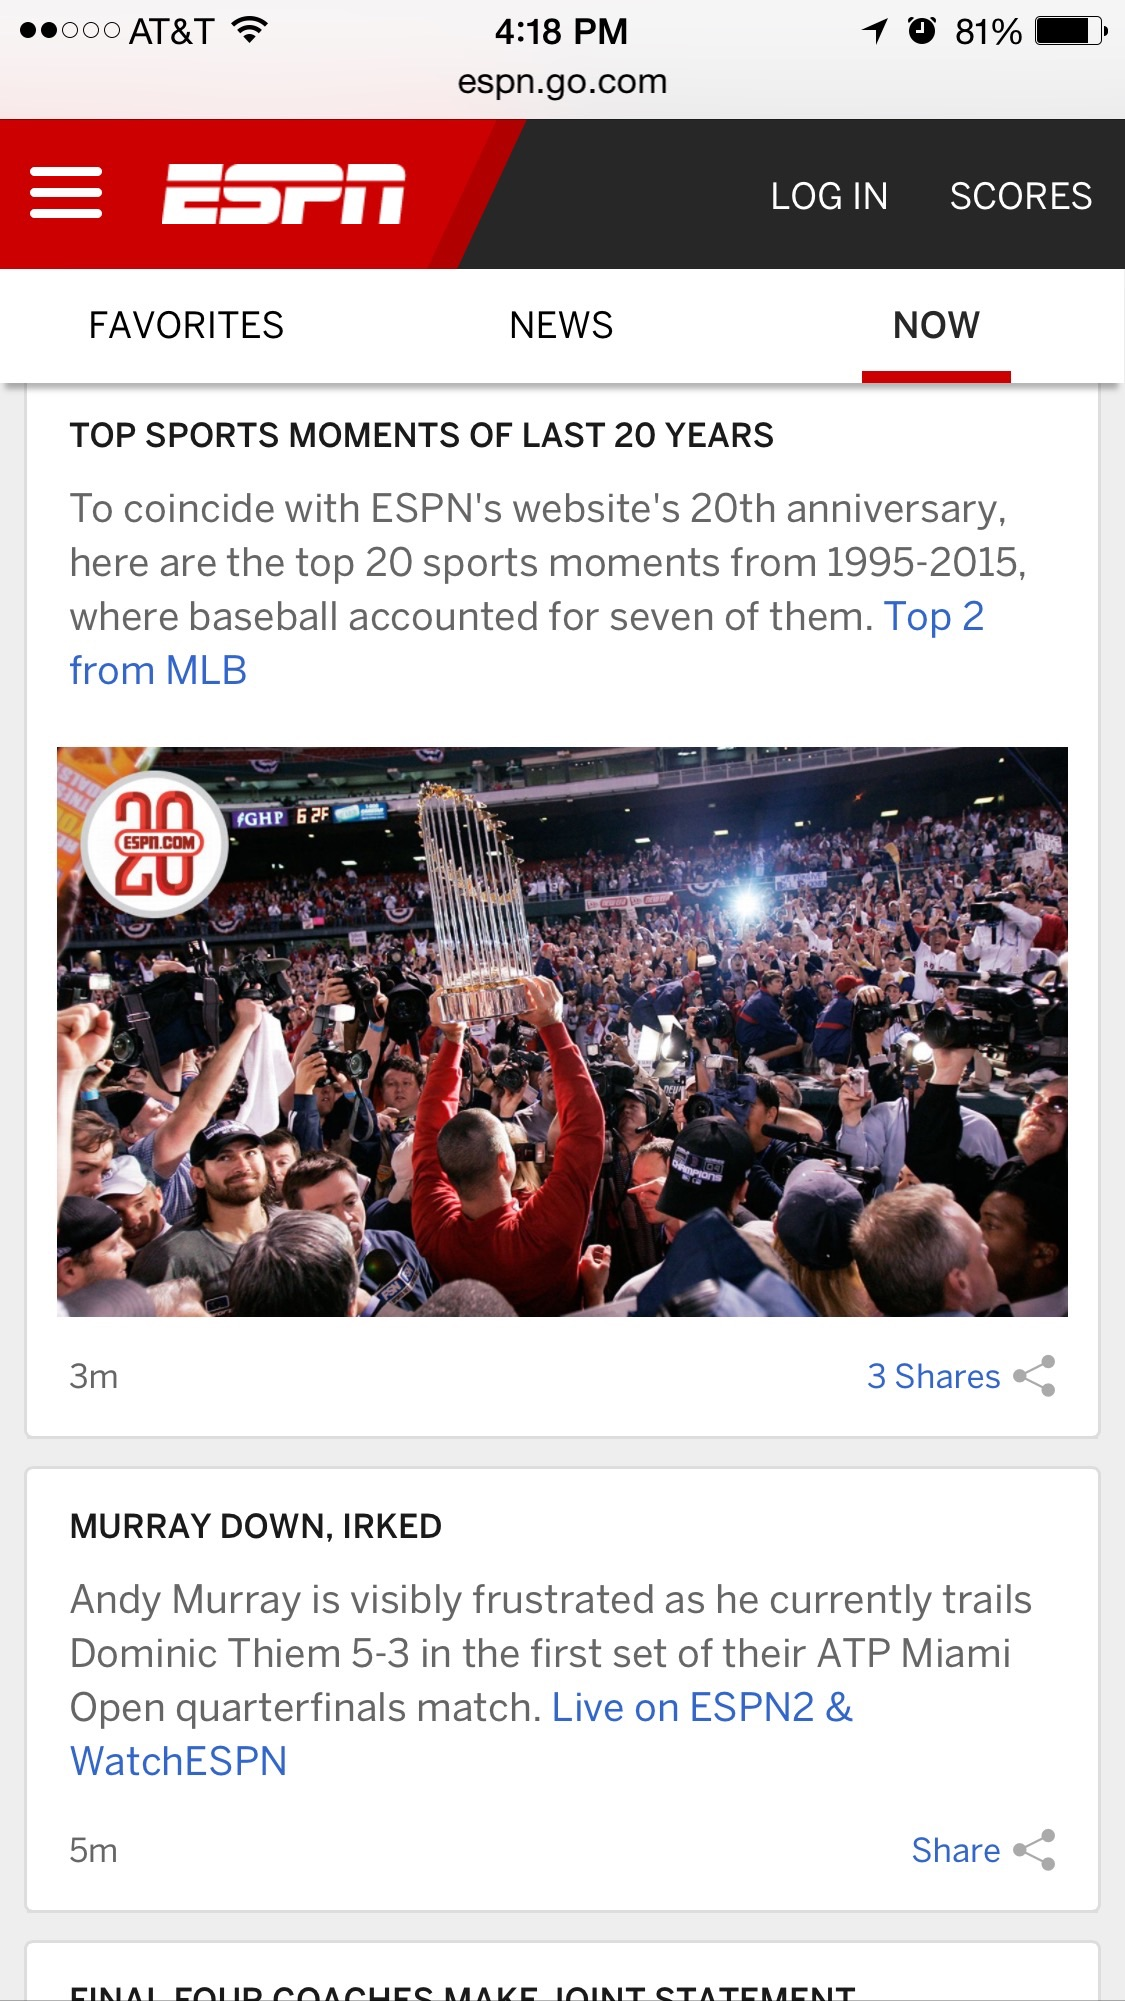 The new ESPN.com has launched